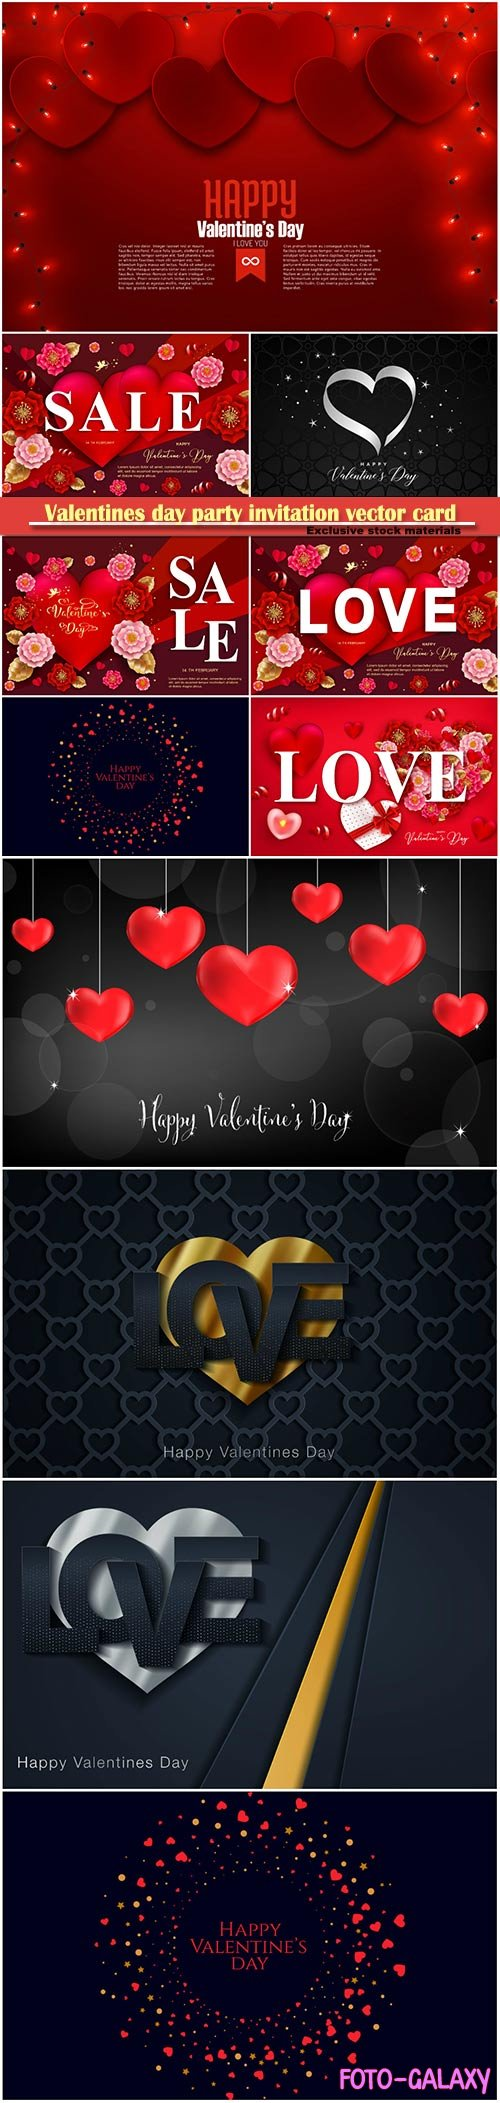 Valentines day party invitation vector card # 48